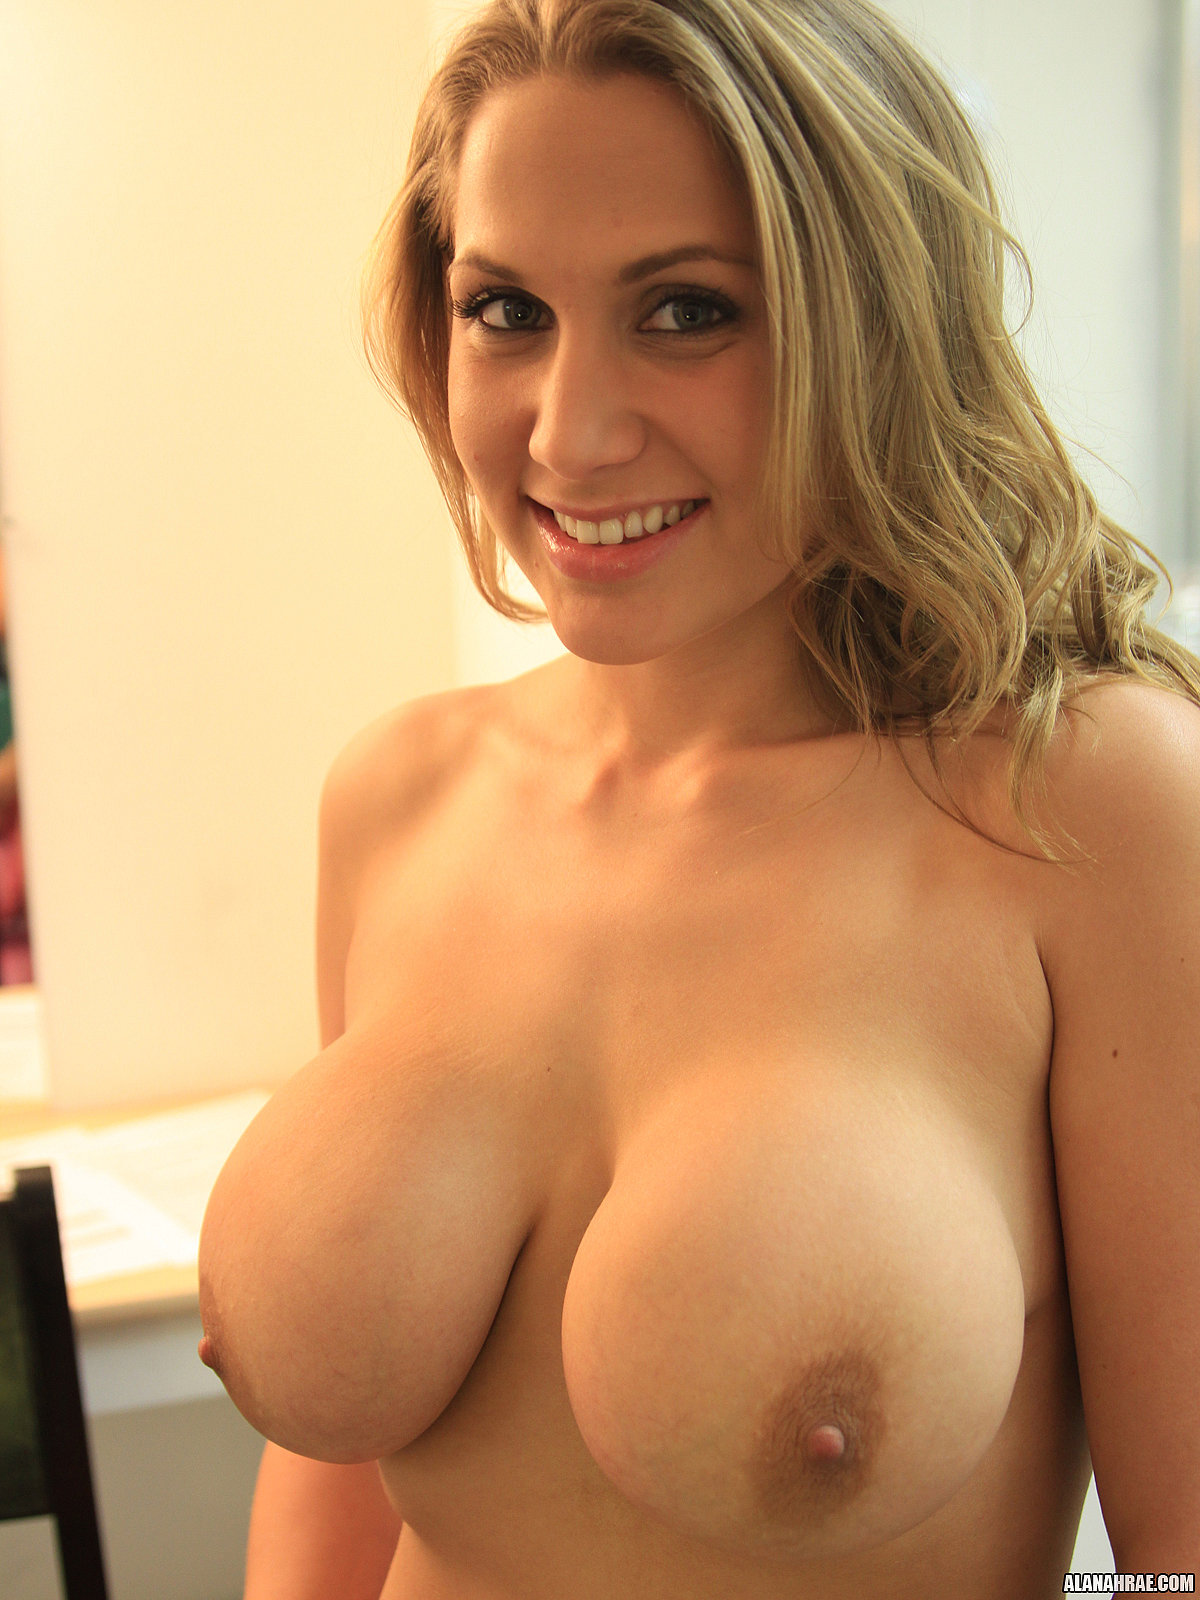 Babe today love your tits alanah rae advanced big tits babe list mobile porn pics